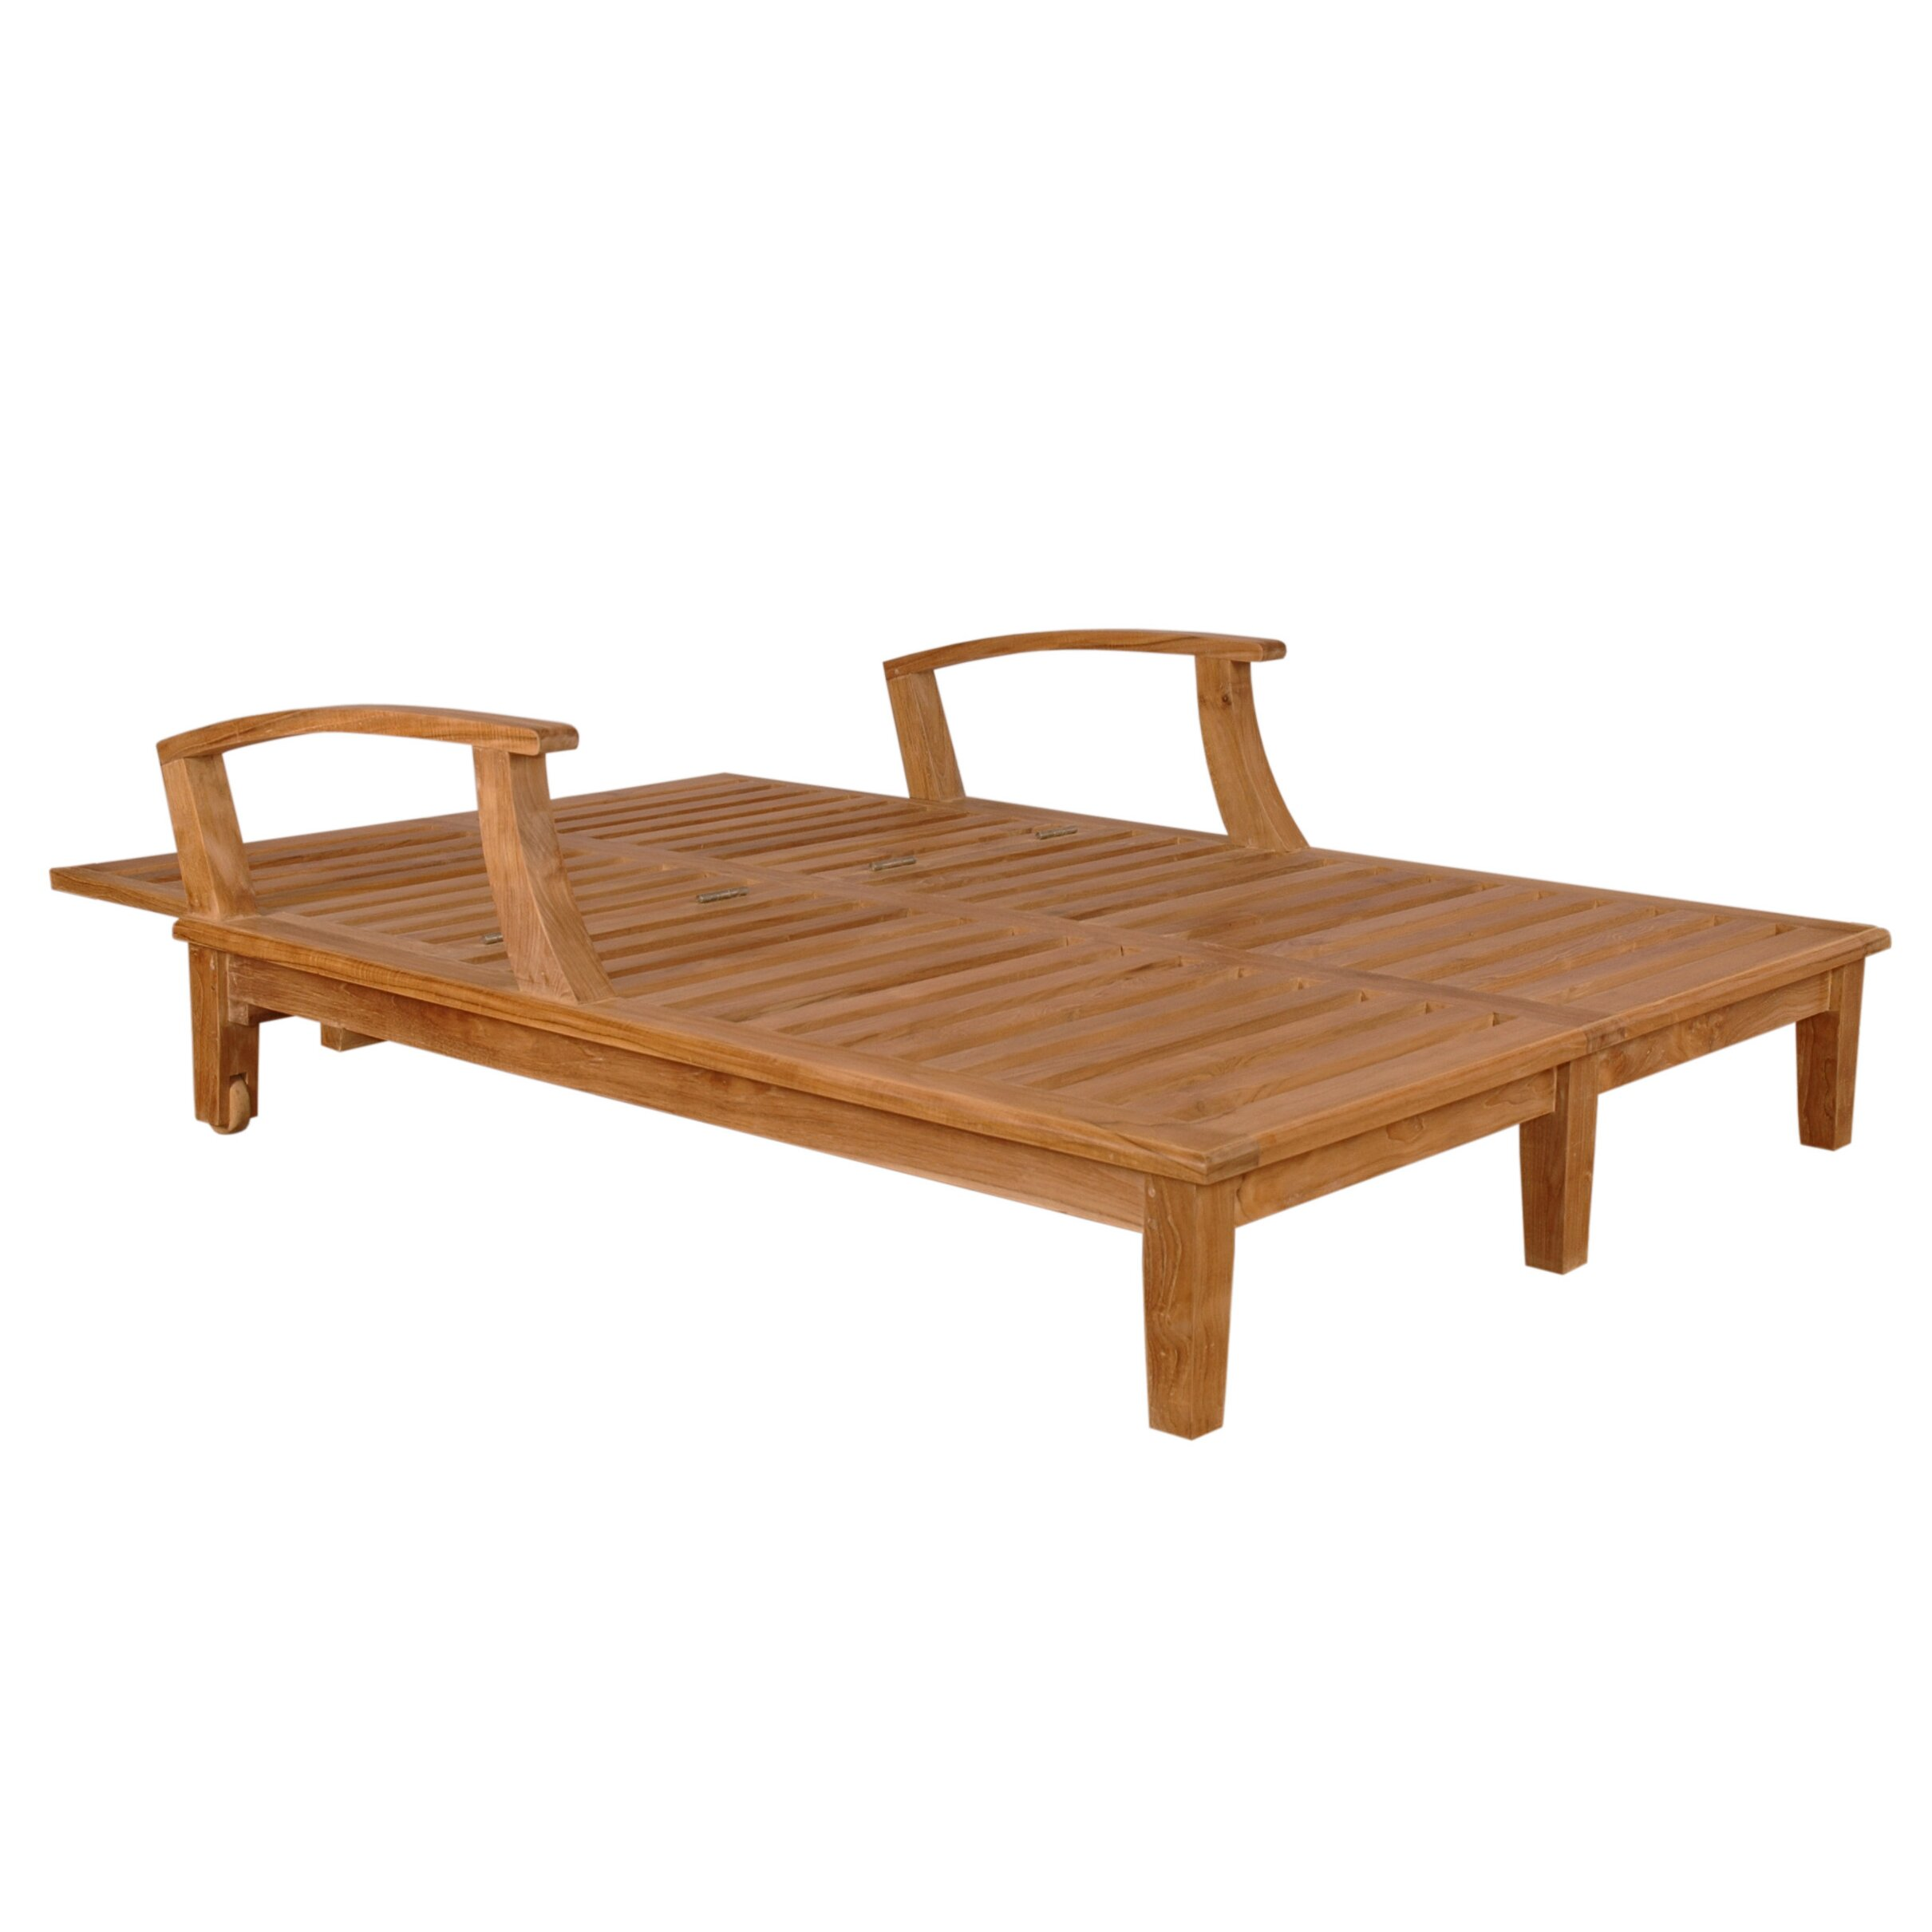 Double Chaise LoungeChaise Lounges Sofa And